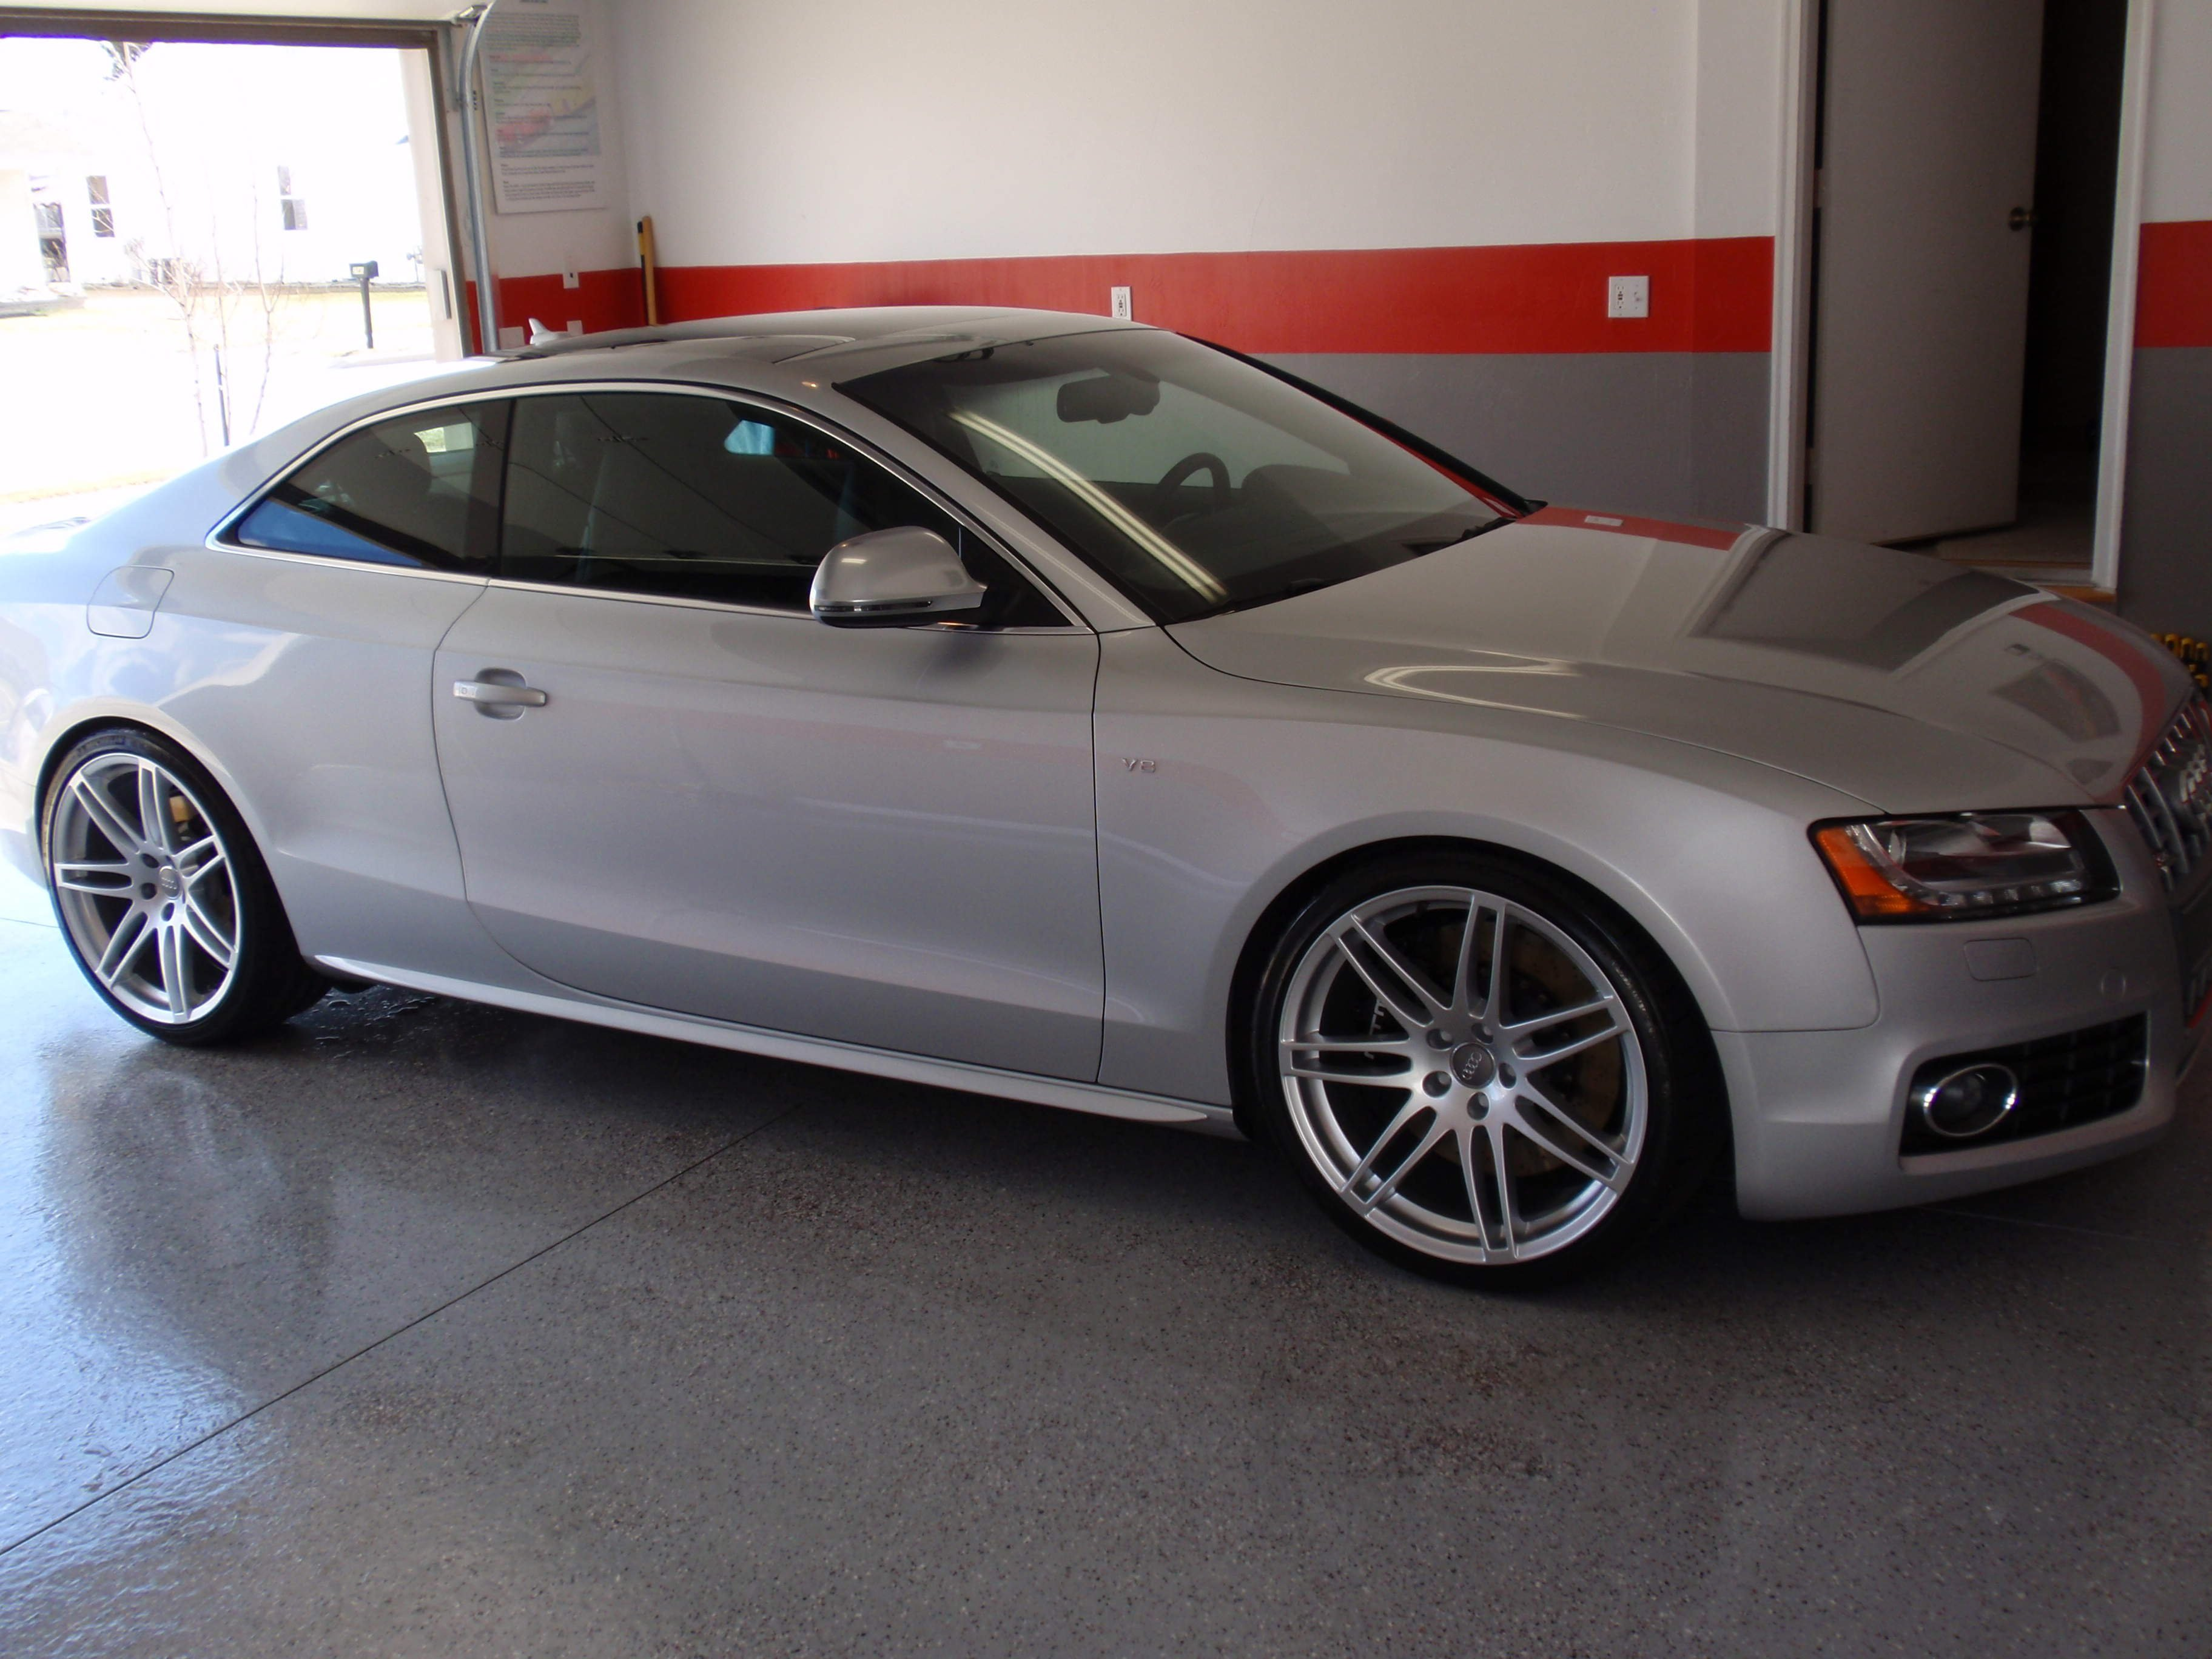 Pics Of Stasis S5 With 20 Oem Rs4 Wheels And 15mm H R Spacers Audi A5 Forum Audi S5 Forum